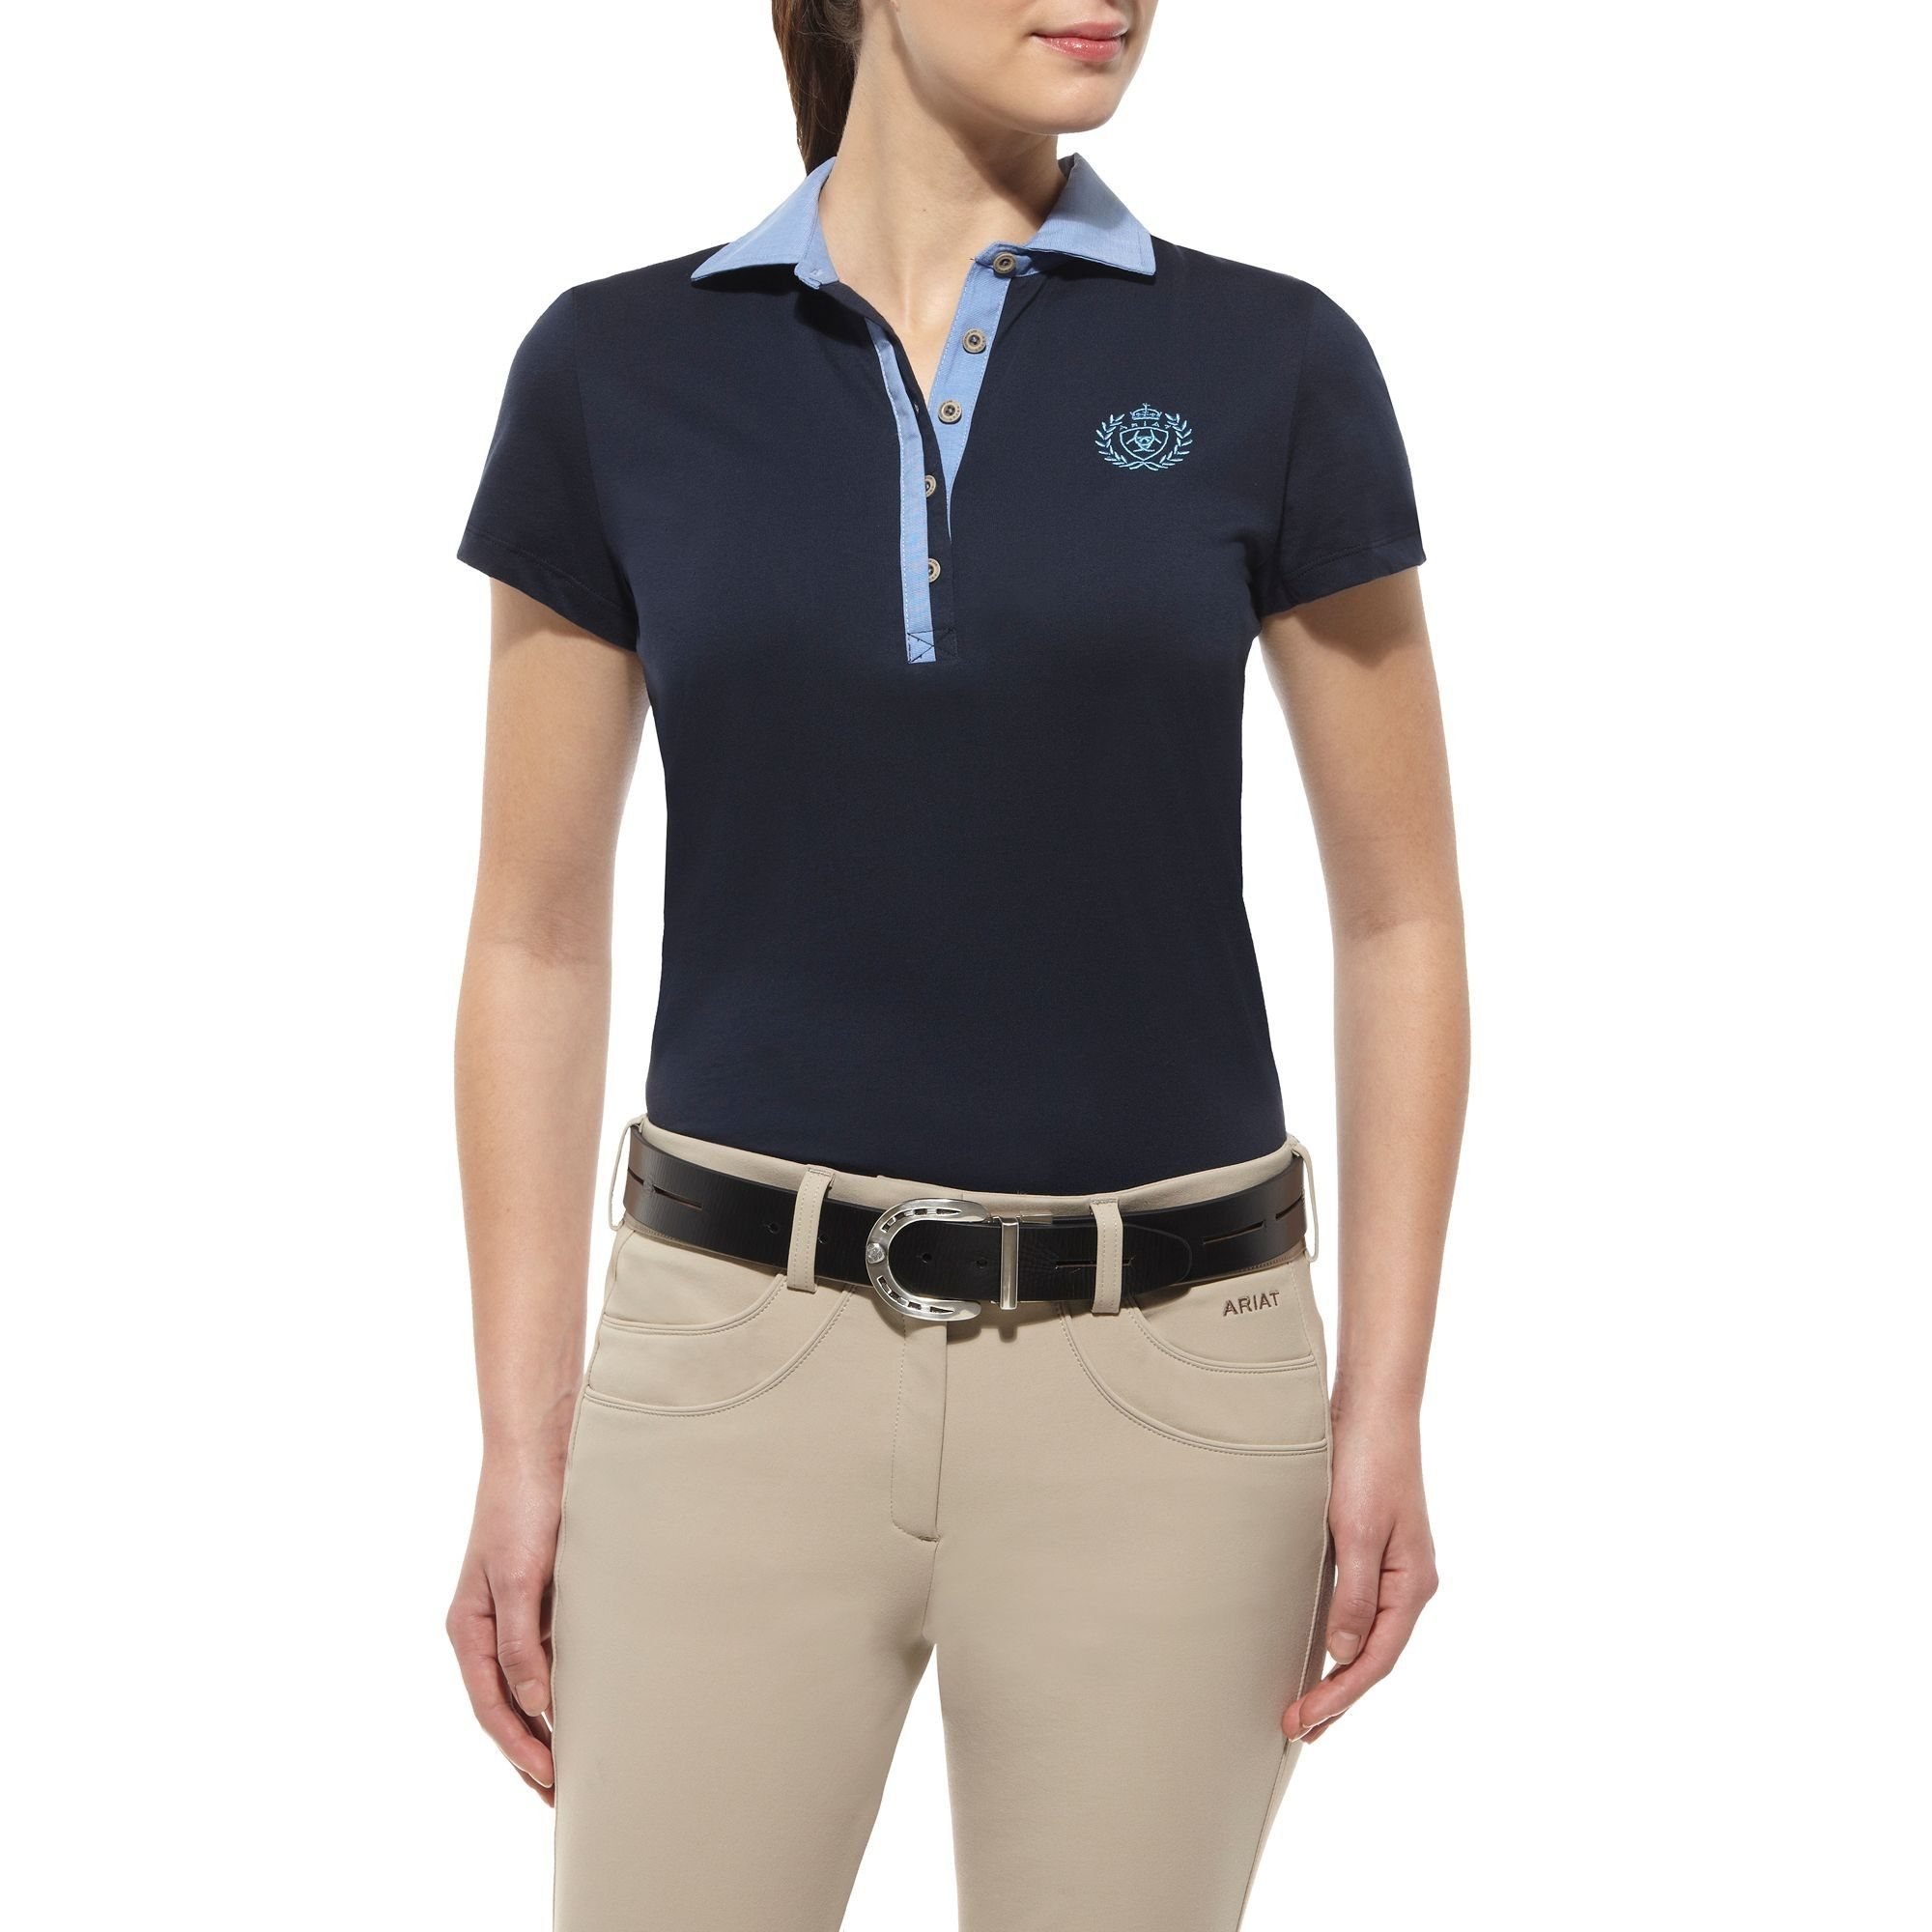 Pin By Mel Sumner On Equestrian Style Pinterest Polo Shirts